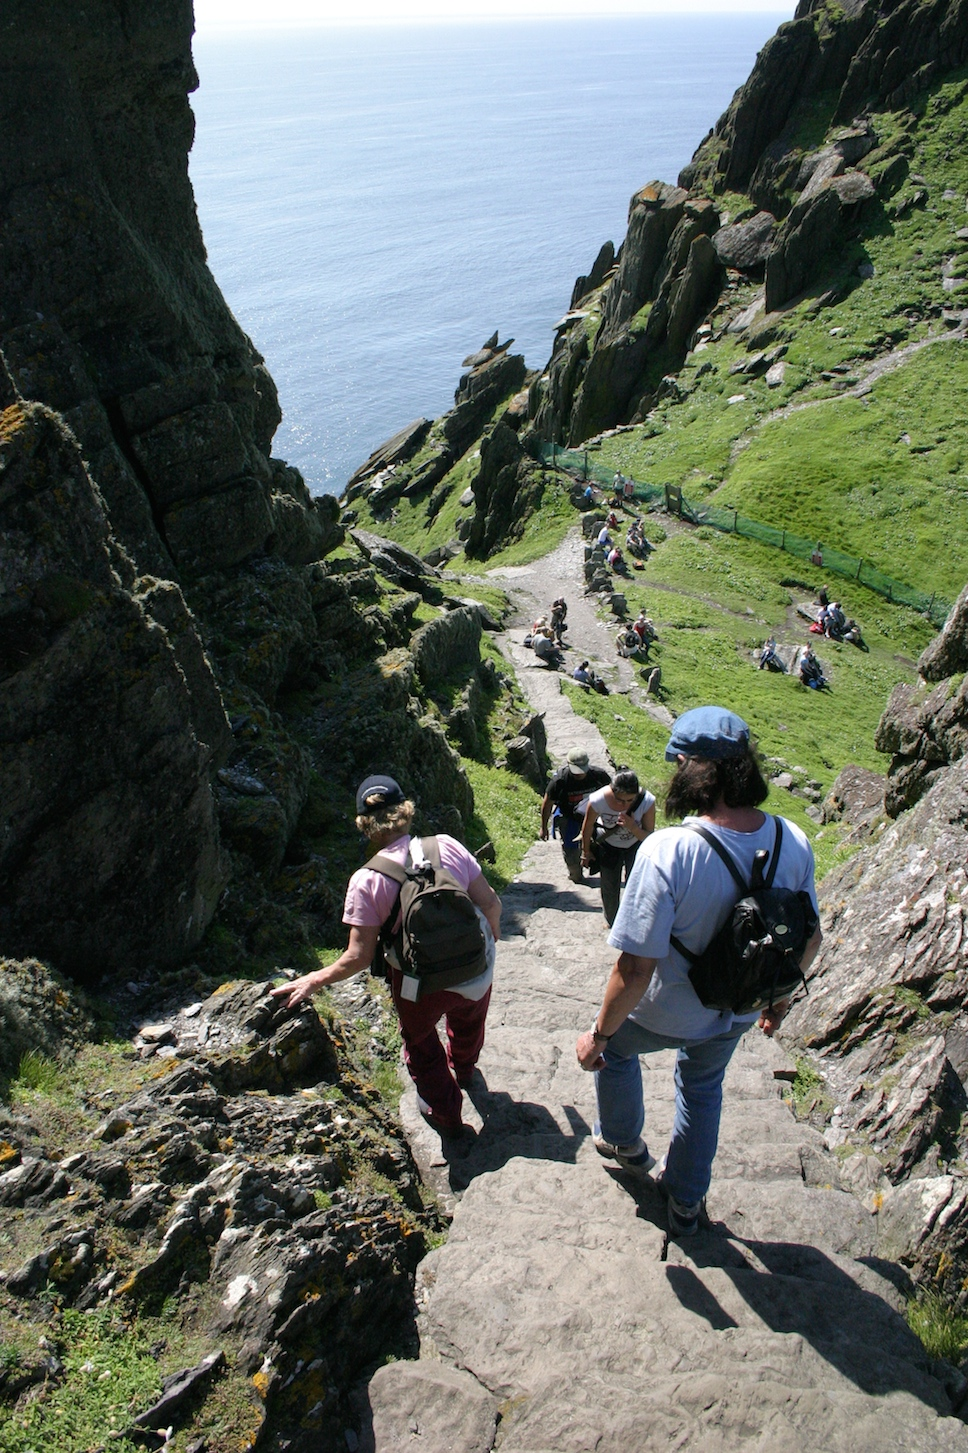 Steep hike down from top of peak of Skellig Michael, RIng of Kerry, Ireland. Photo Credit: Tom Wilmer